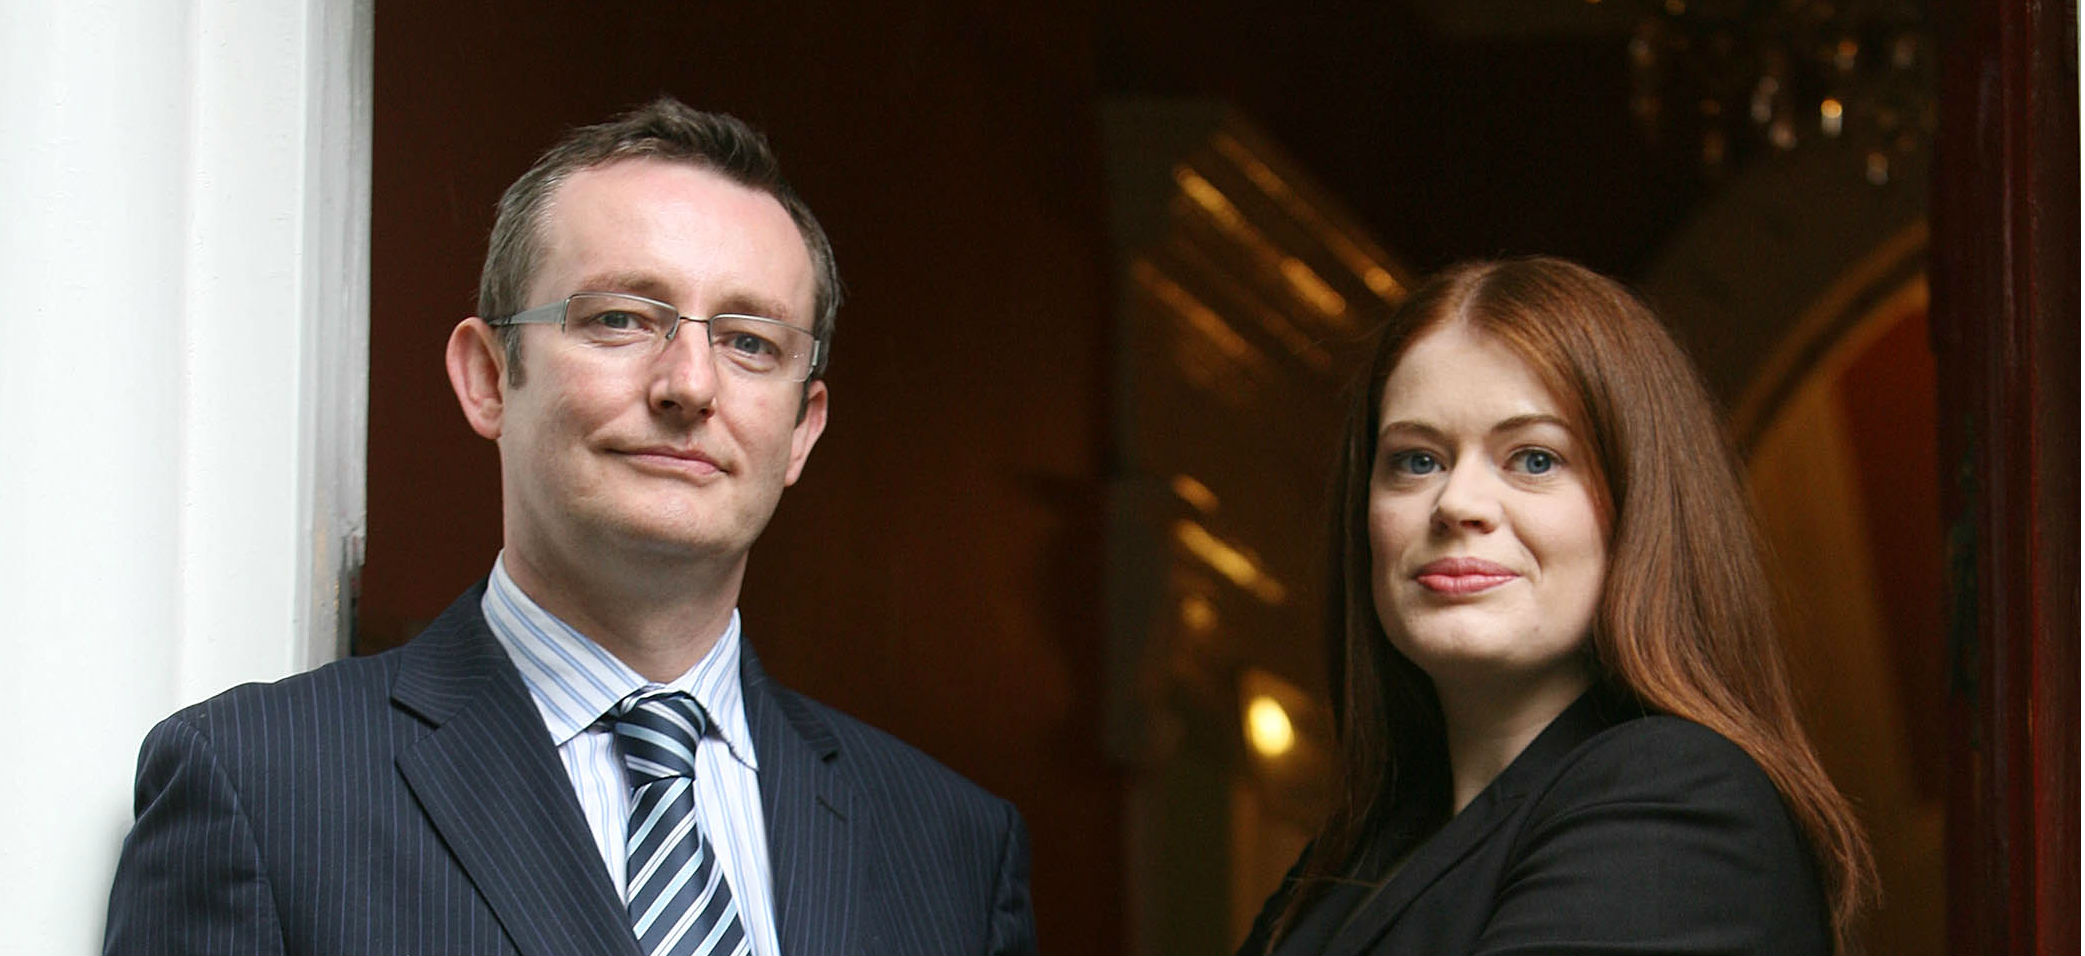 Wills and Probate Solicitors in Dublin